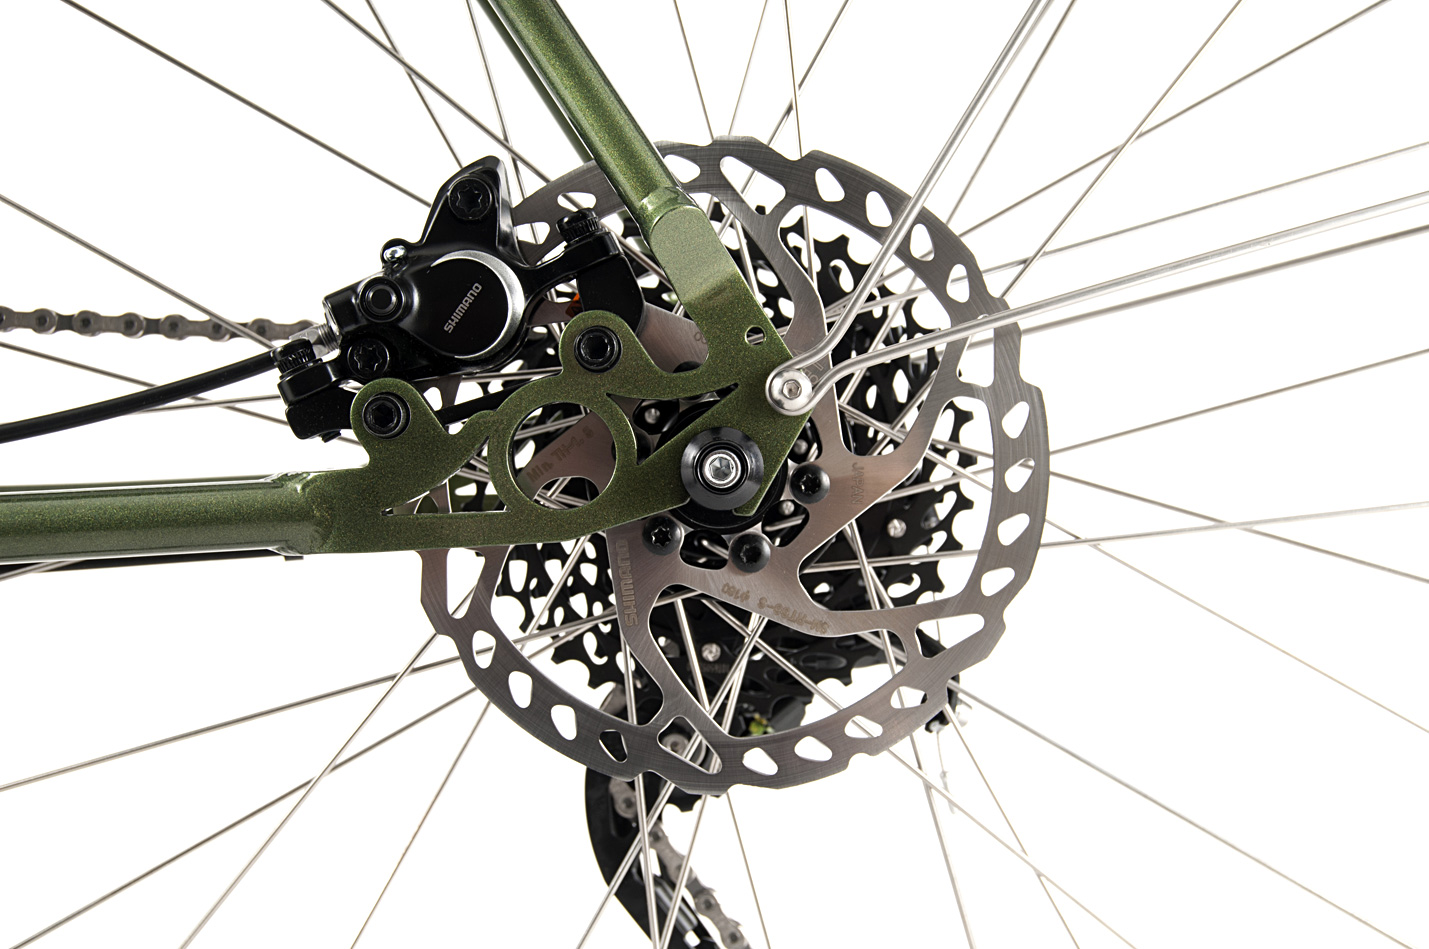 Omnium Mini-Max Sideview of the cassette and rear break